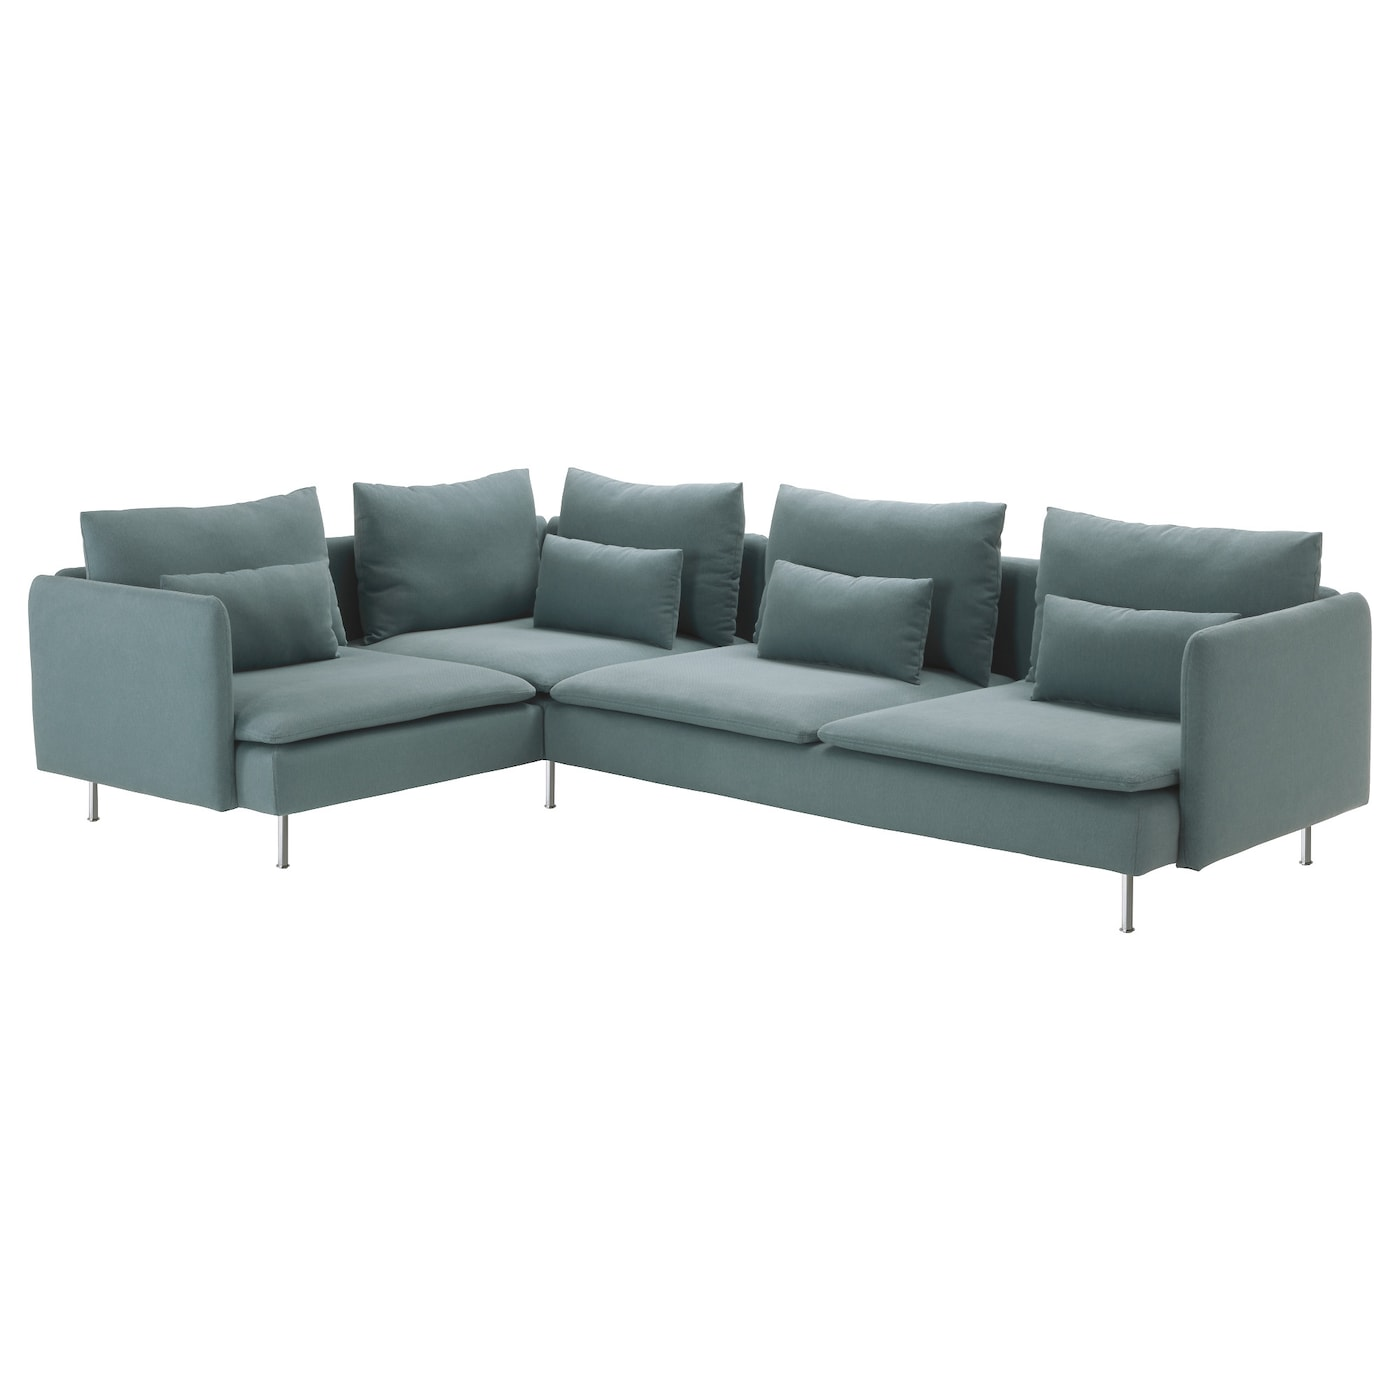 s derhamn corner sofa 2 1 finnsta turquoise 291x198 cm ikea. Black Bedroom Furniture Sets. Home Design Ideas